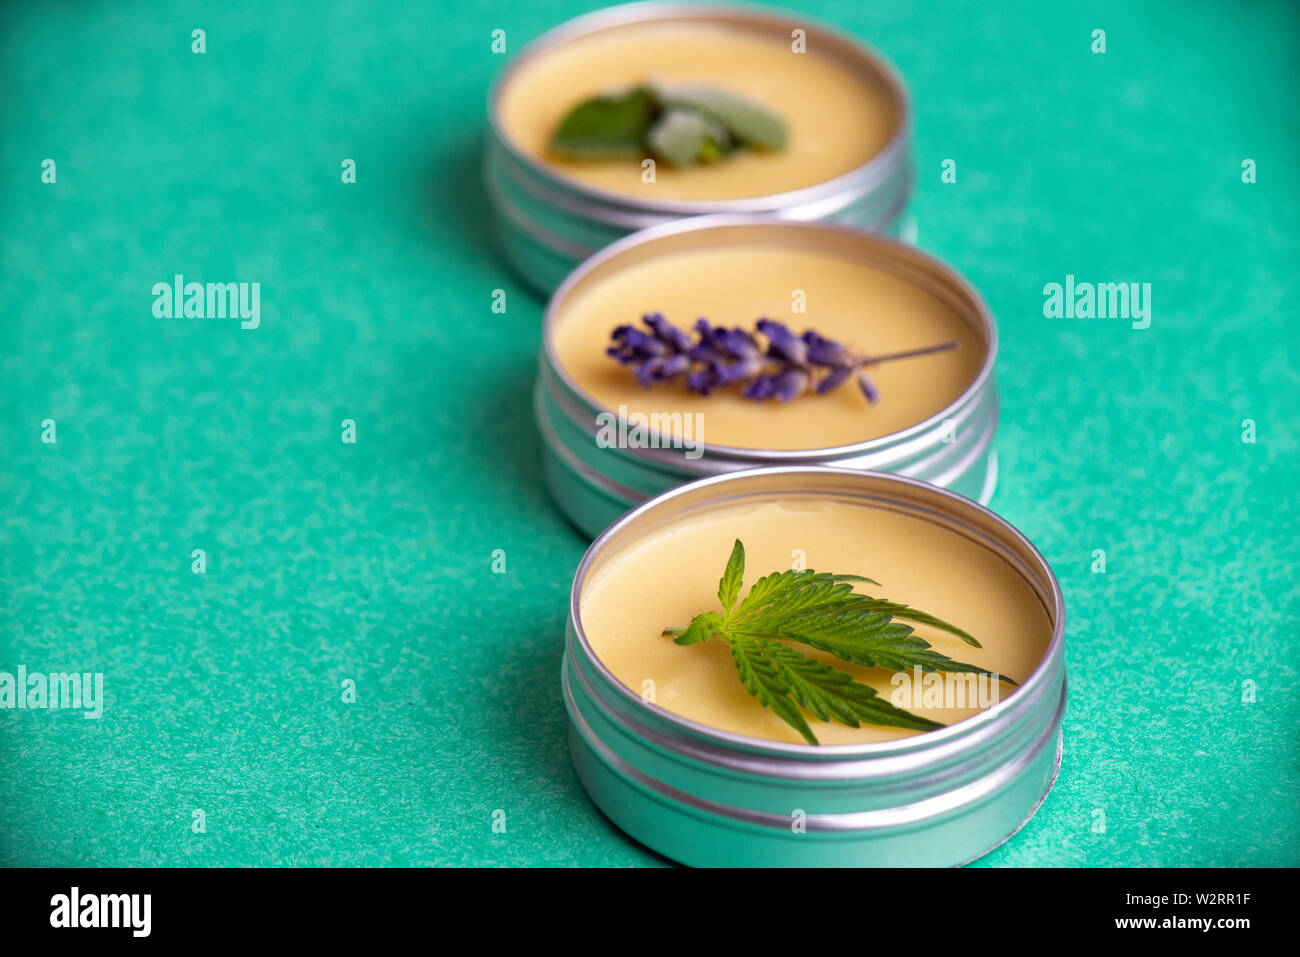 Cannabis salve made from hemp and CBD oils with mint, lavender and marijuana leaves on green background Stock Photo